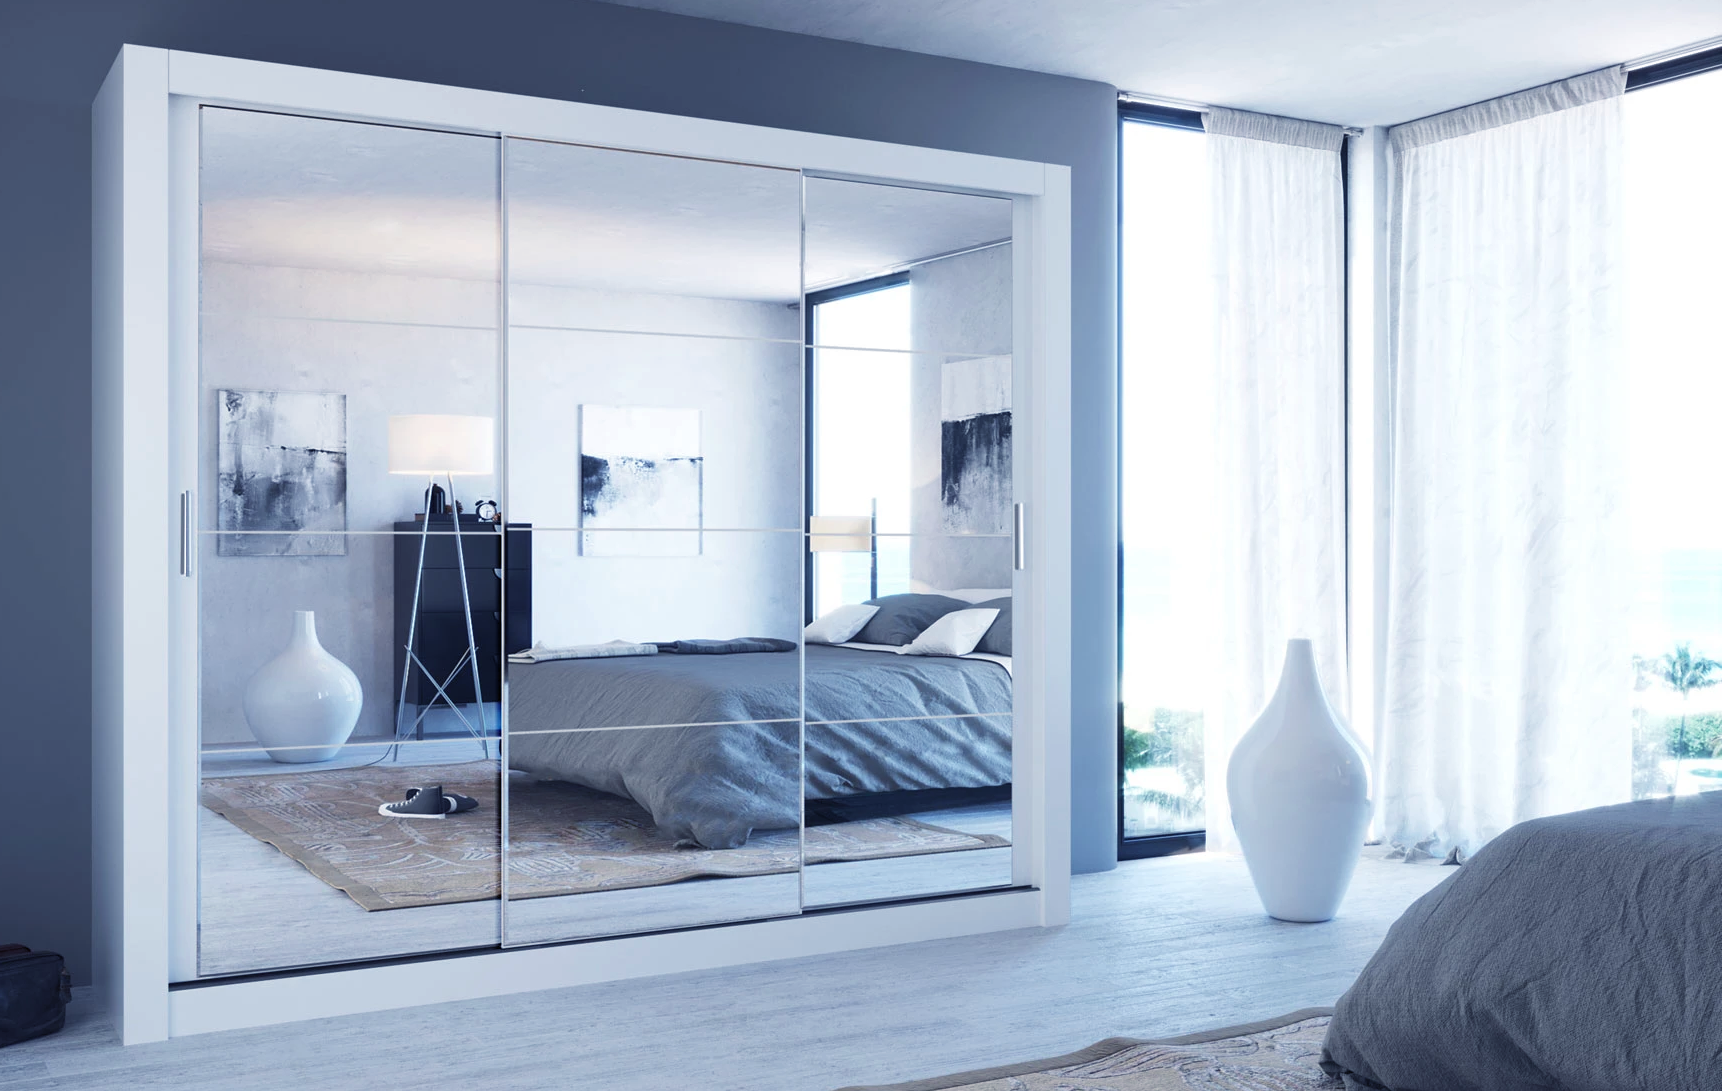 The Advantages of Mirrored Bedroom Furniture as a Design Element